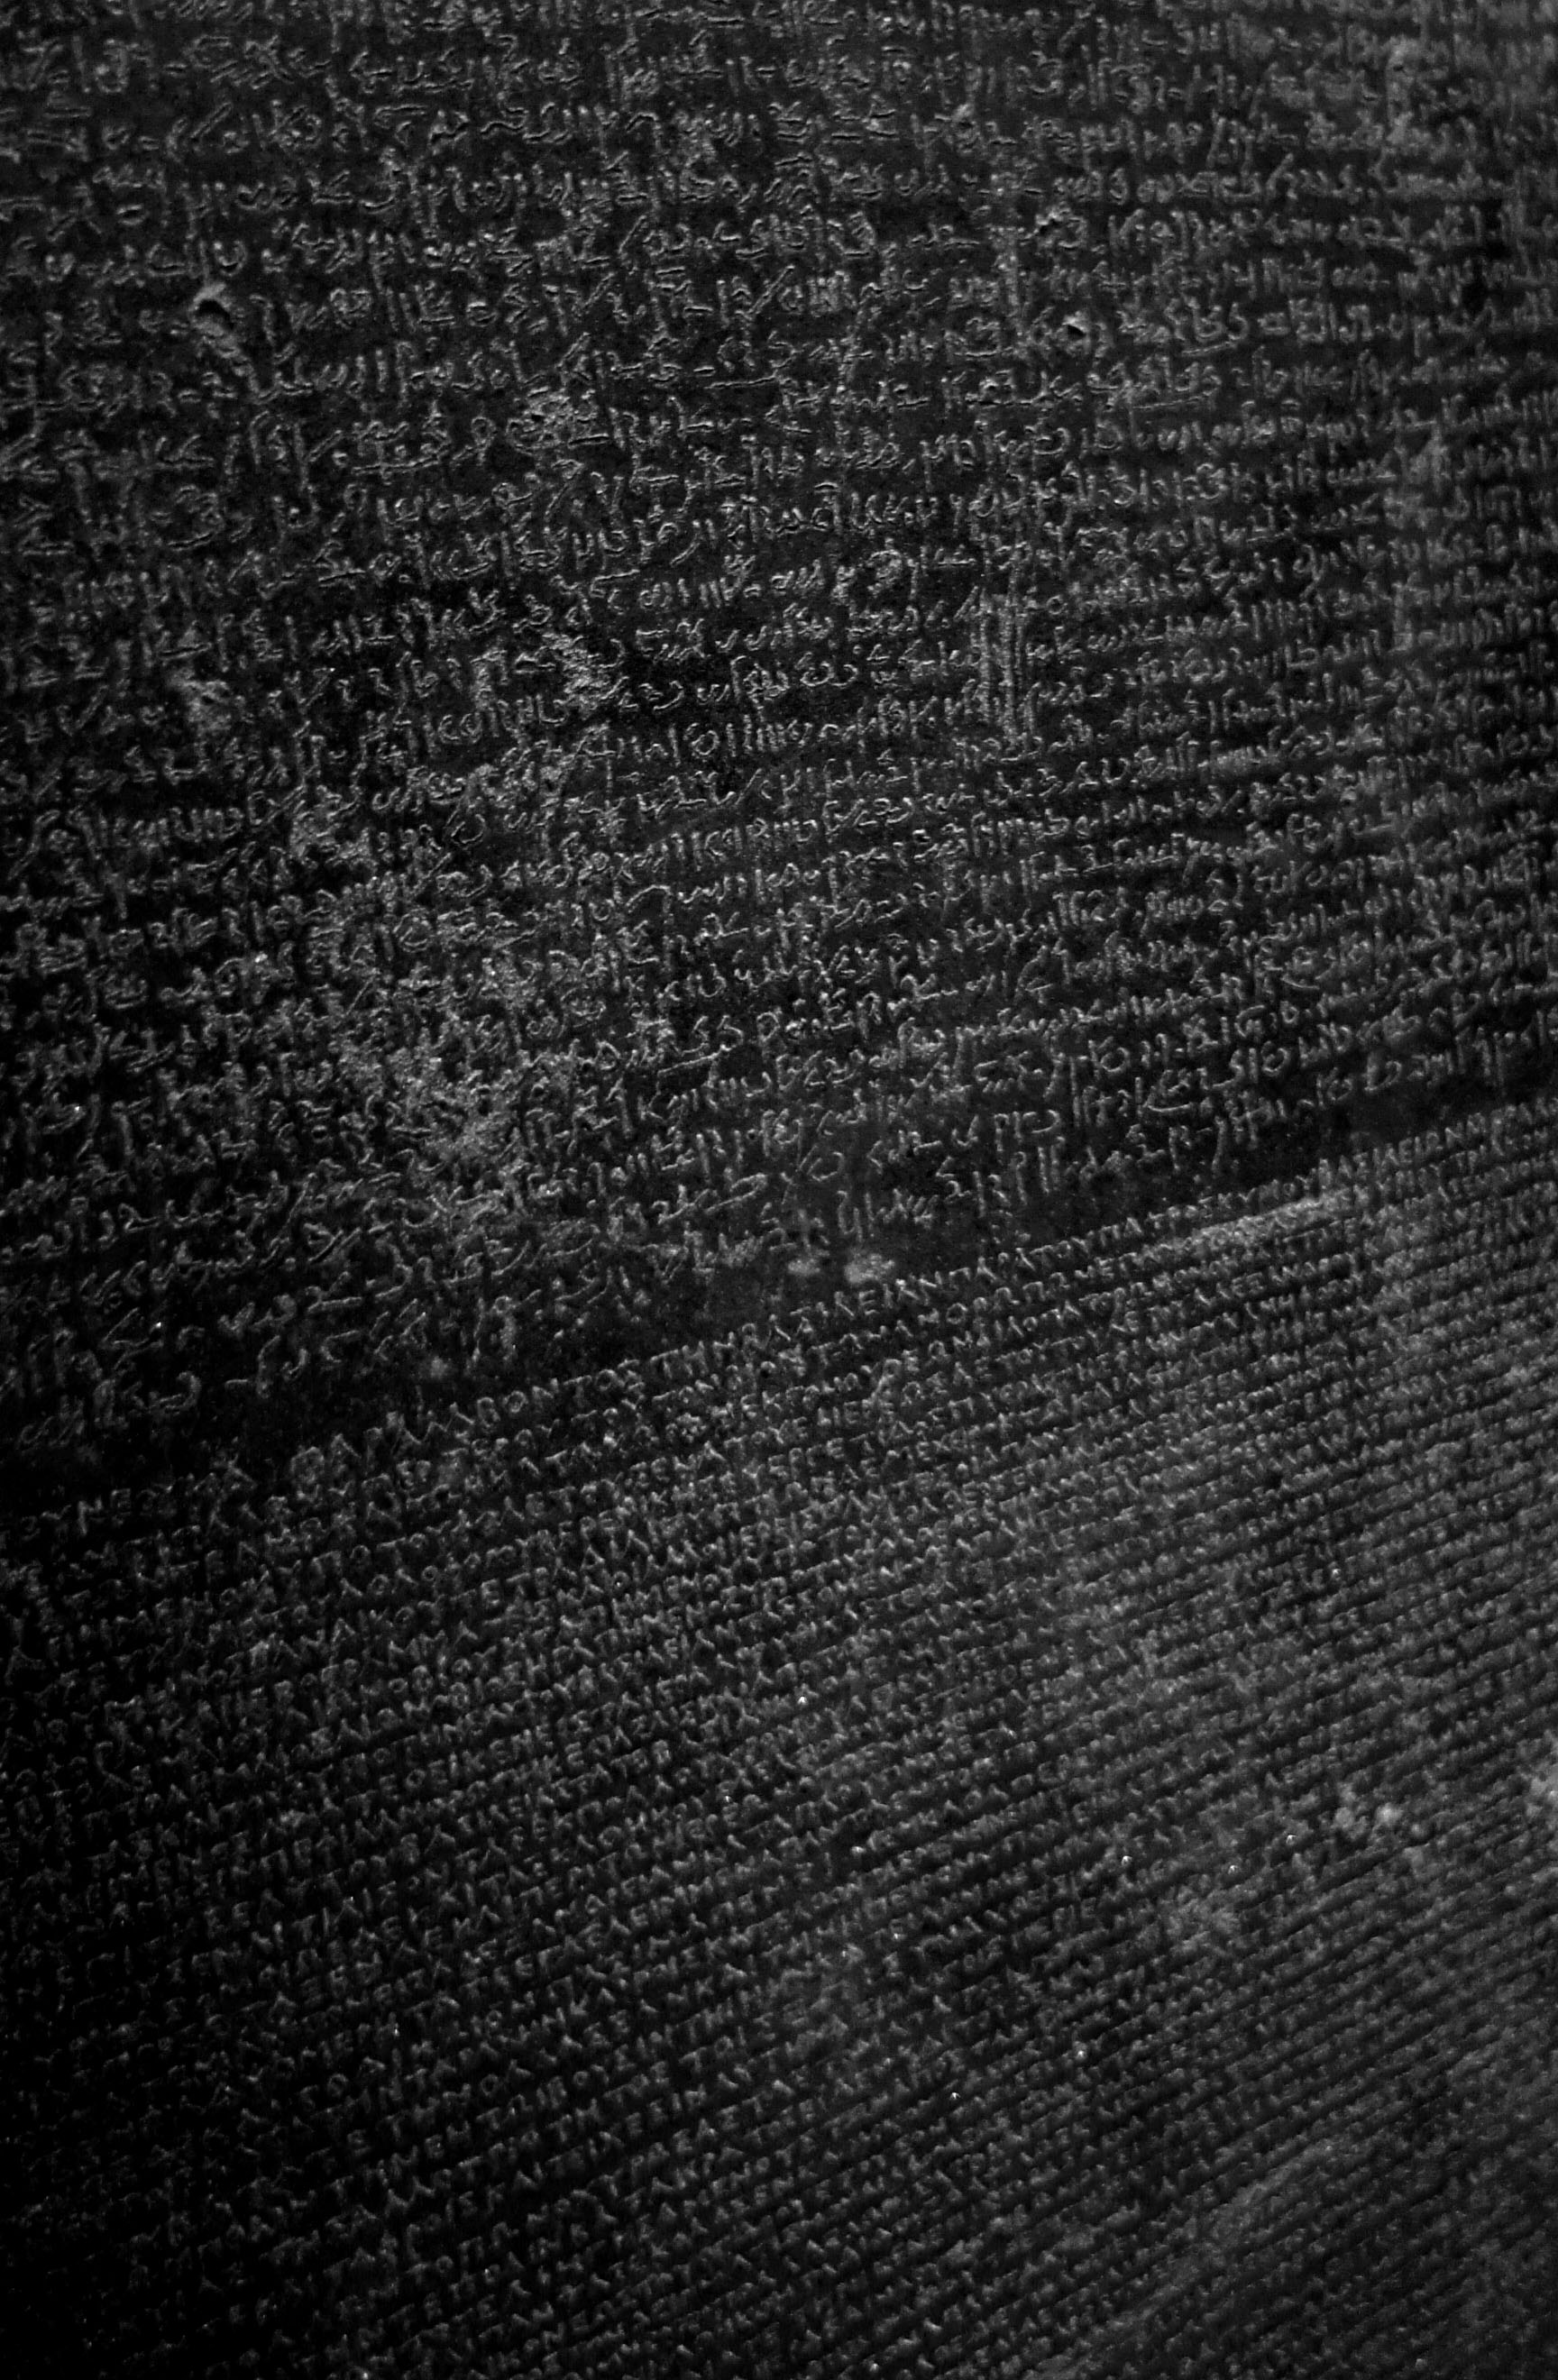 The only fragment of the rosetta stone a beautiful piece of ancient